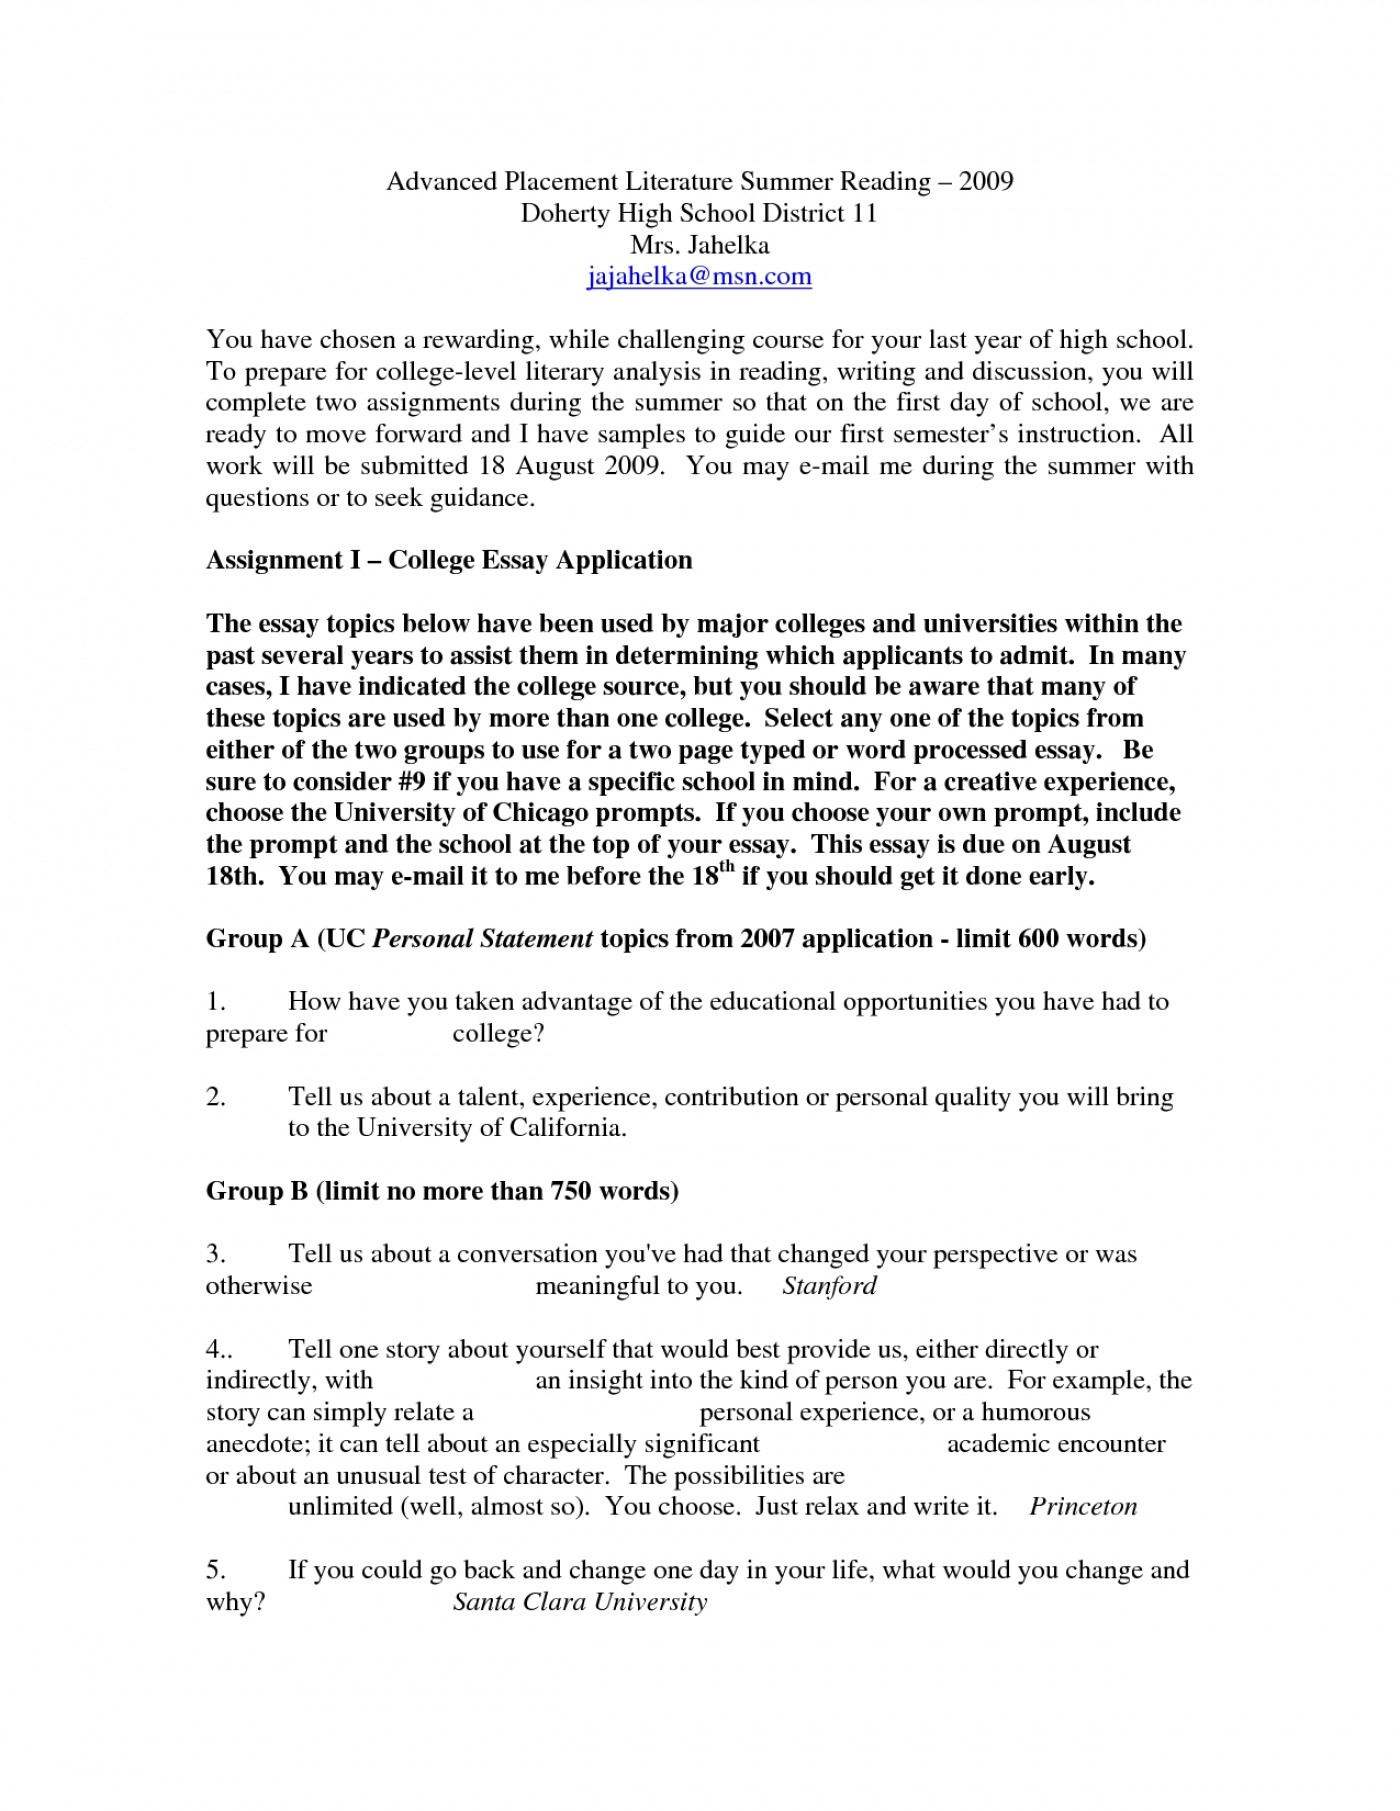 010 Essays For Middle School Ideas Of How To Write Good College Admissions Essay Admission With Best Humorous Shocking Informative Writing Leadership High Students 1400